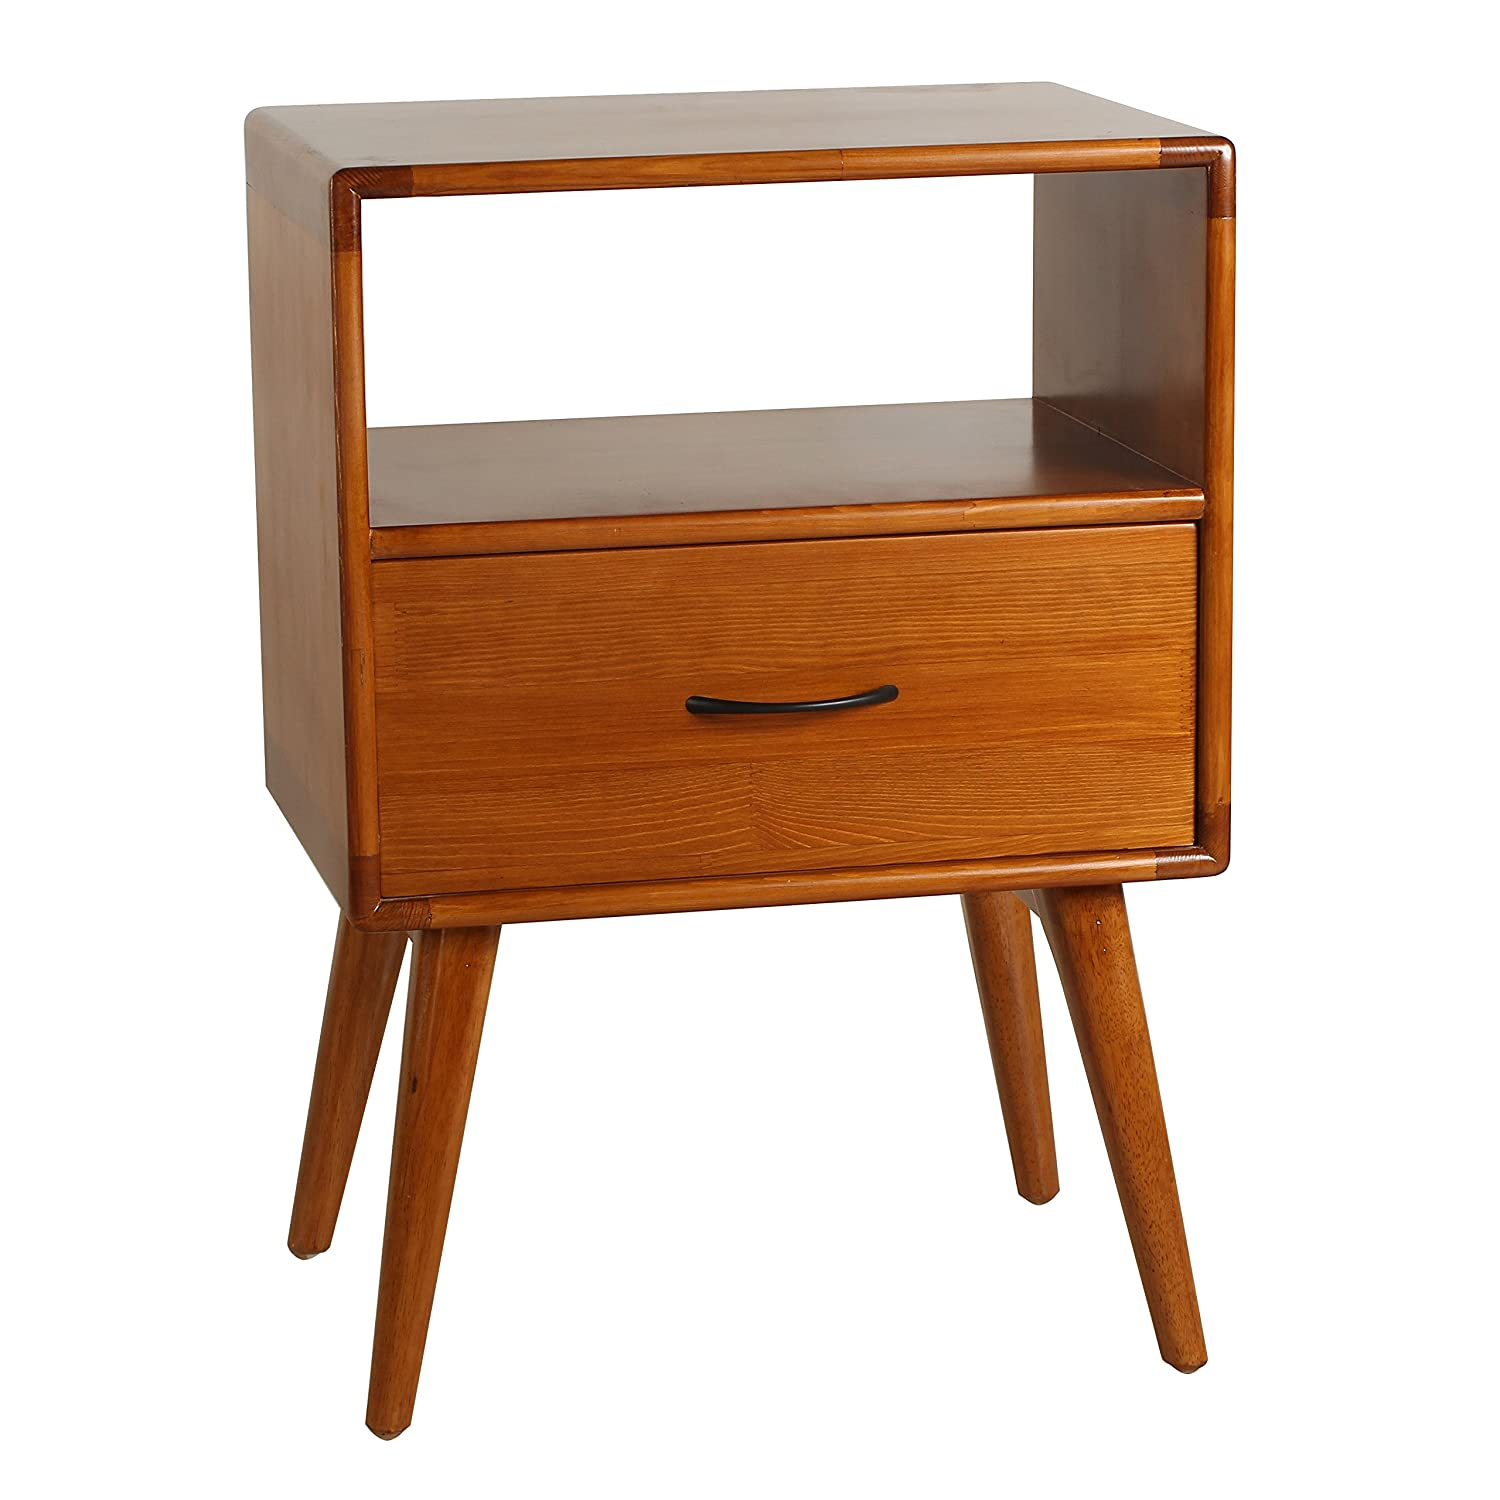 Porthos Home CB140A NAT Andrew Mid-Century Modern End Table with Shelf and Pull-Out Drawer, Crafted from Solid Pine Wood with Walnut Finish, Suitable for Small Living Rooms and Bedrooms, One Size, Natural